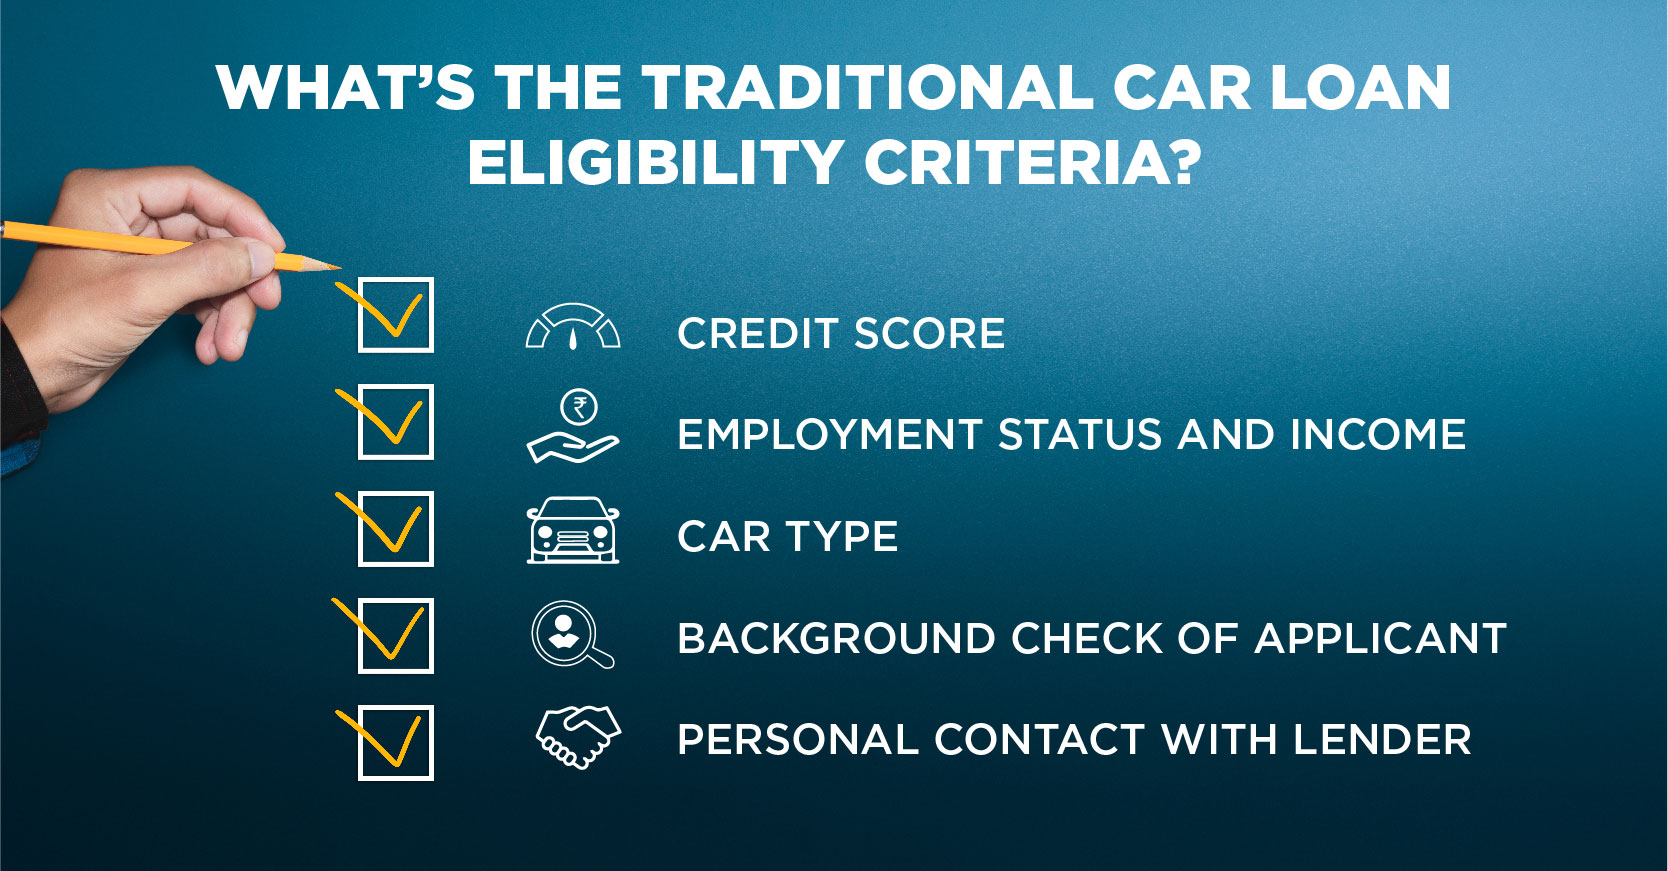 WHAT'S THE TRADITIONAL CAR LOAN ELIGIBILITY CRITERIA?